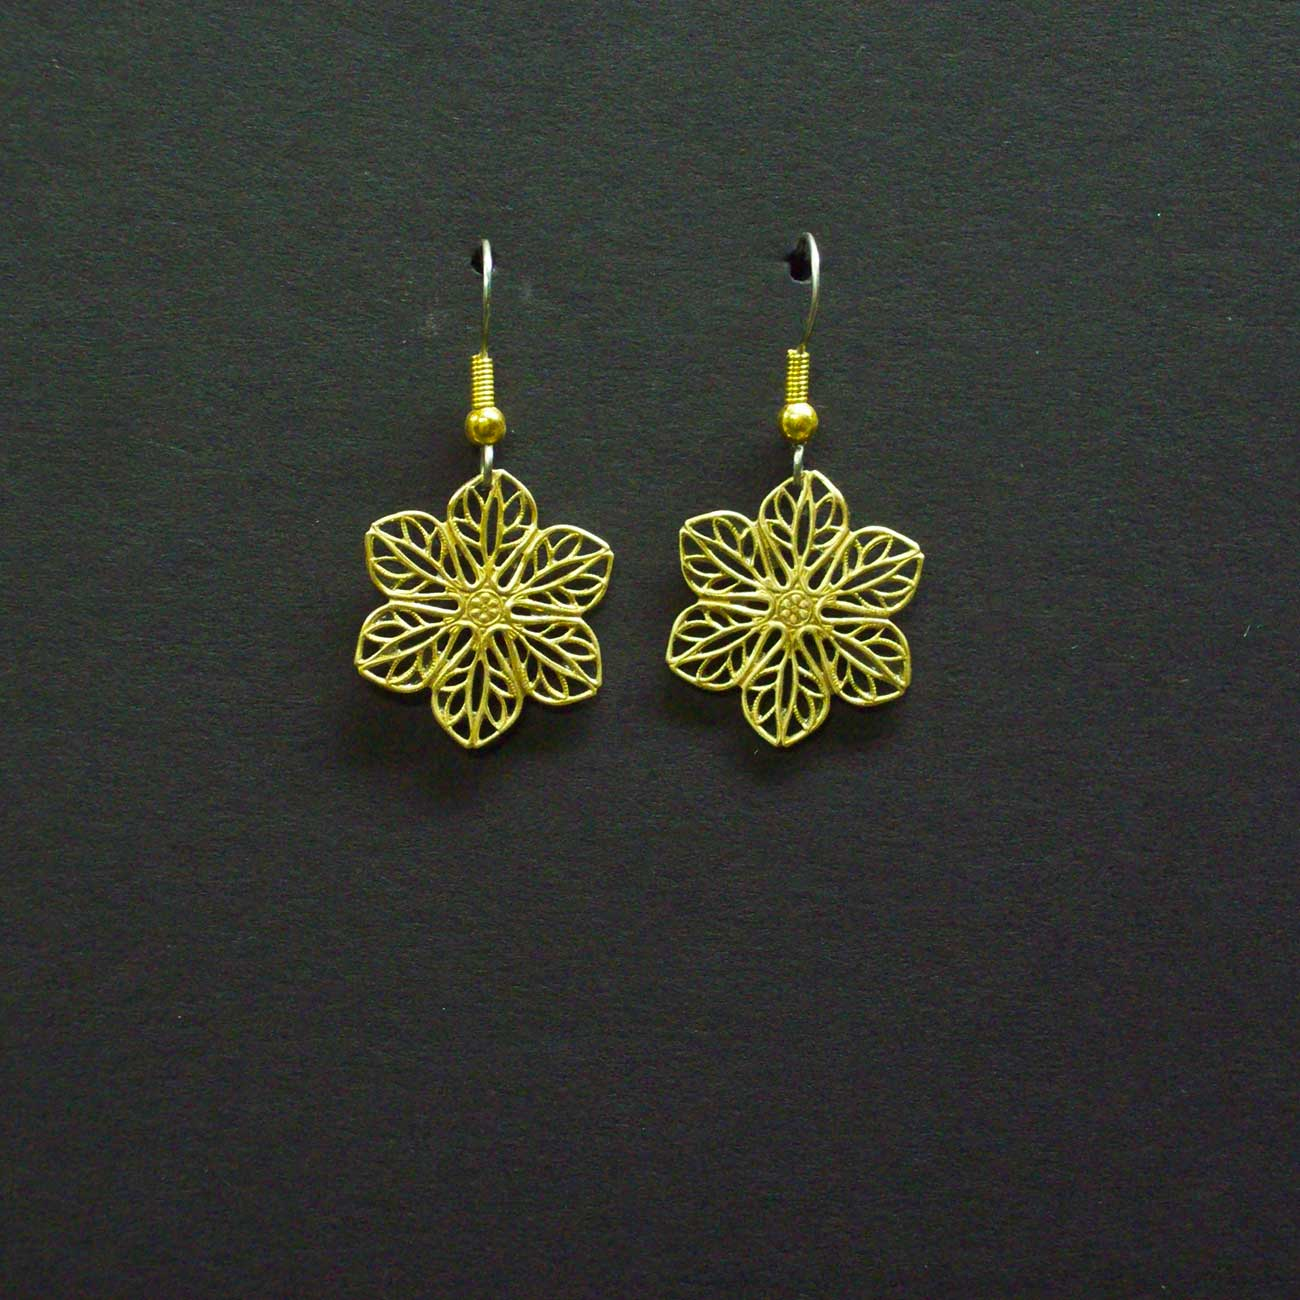 Small Filigree Star Earrings